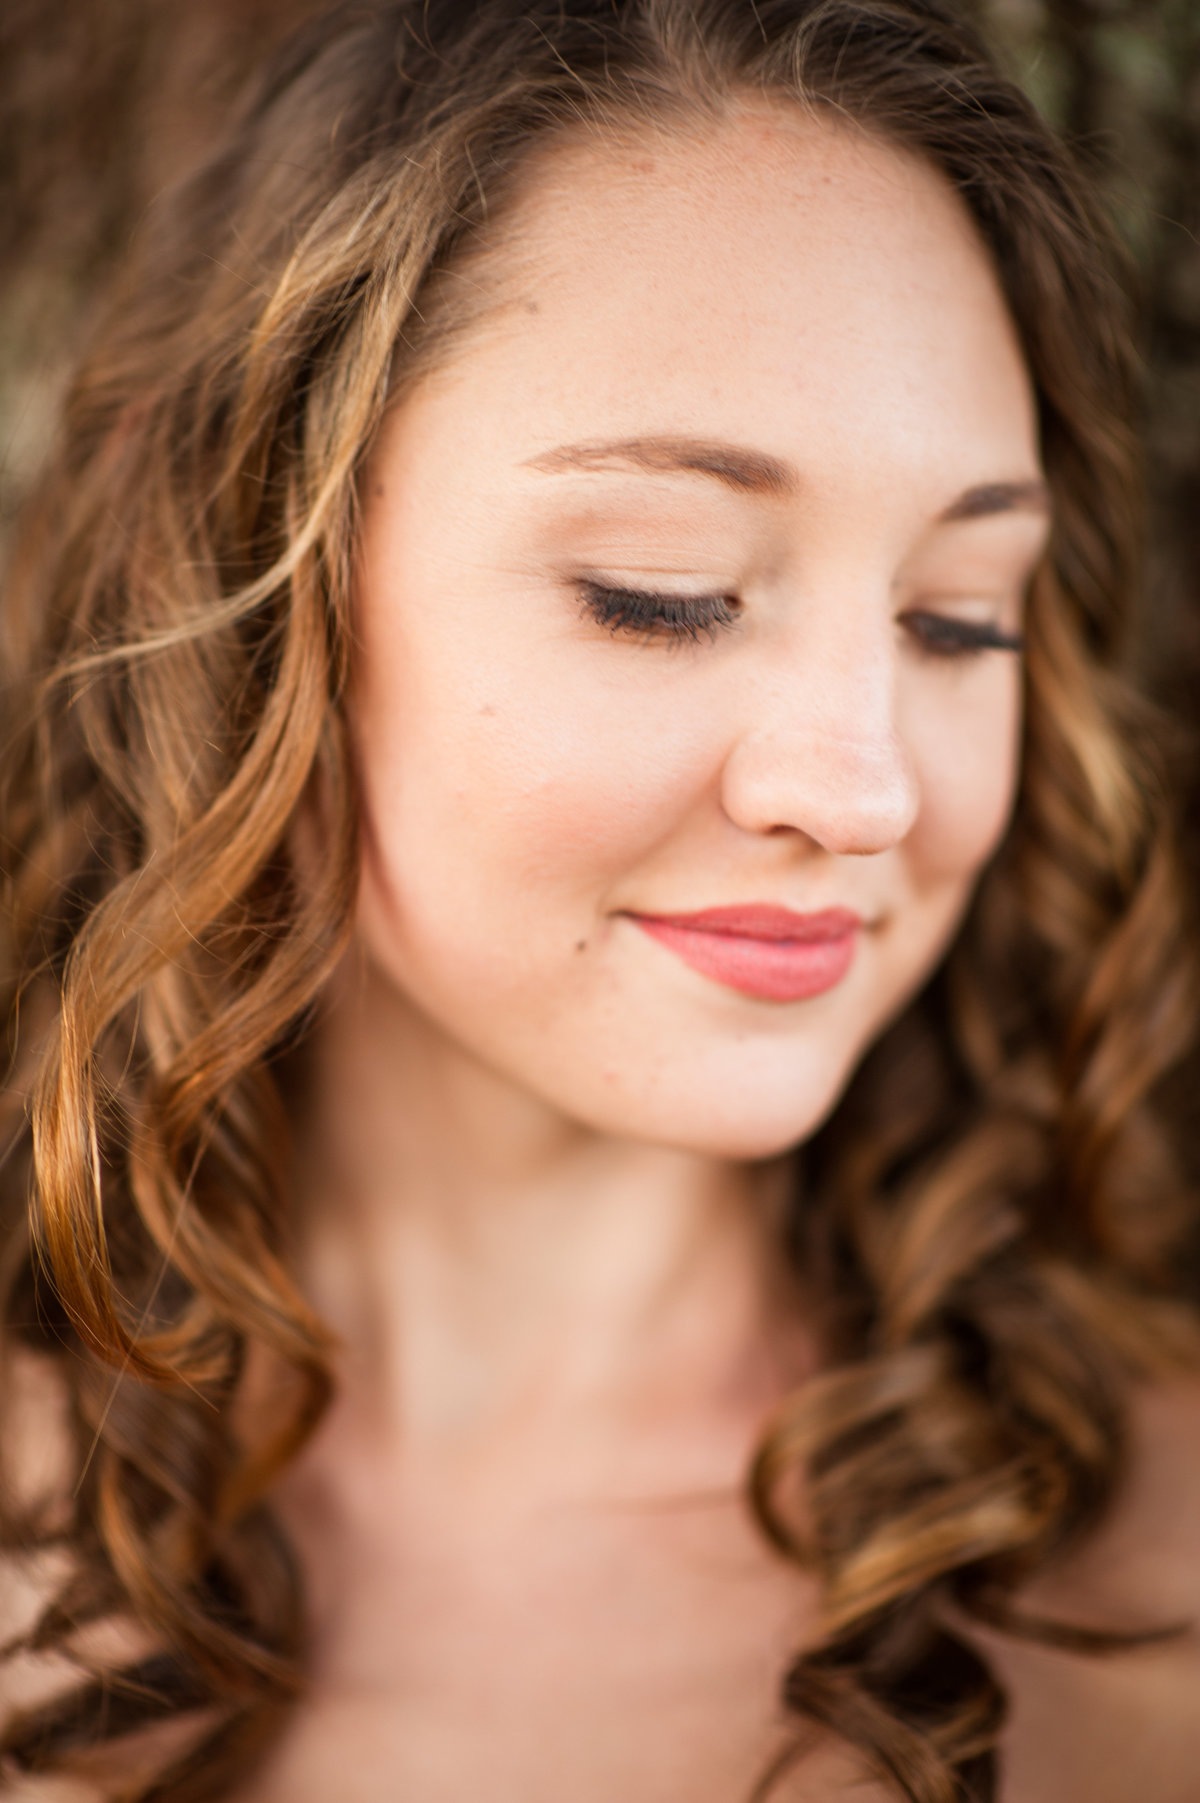 Ormond Beach senior portraits (1)